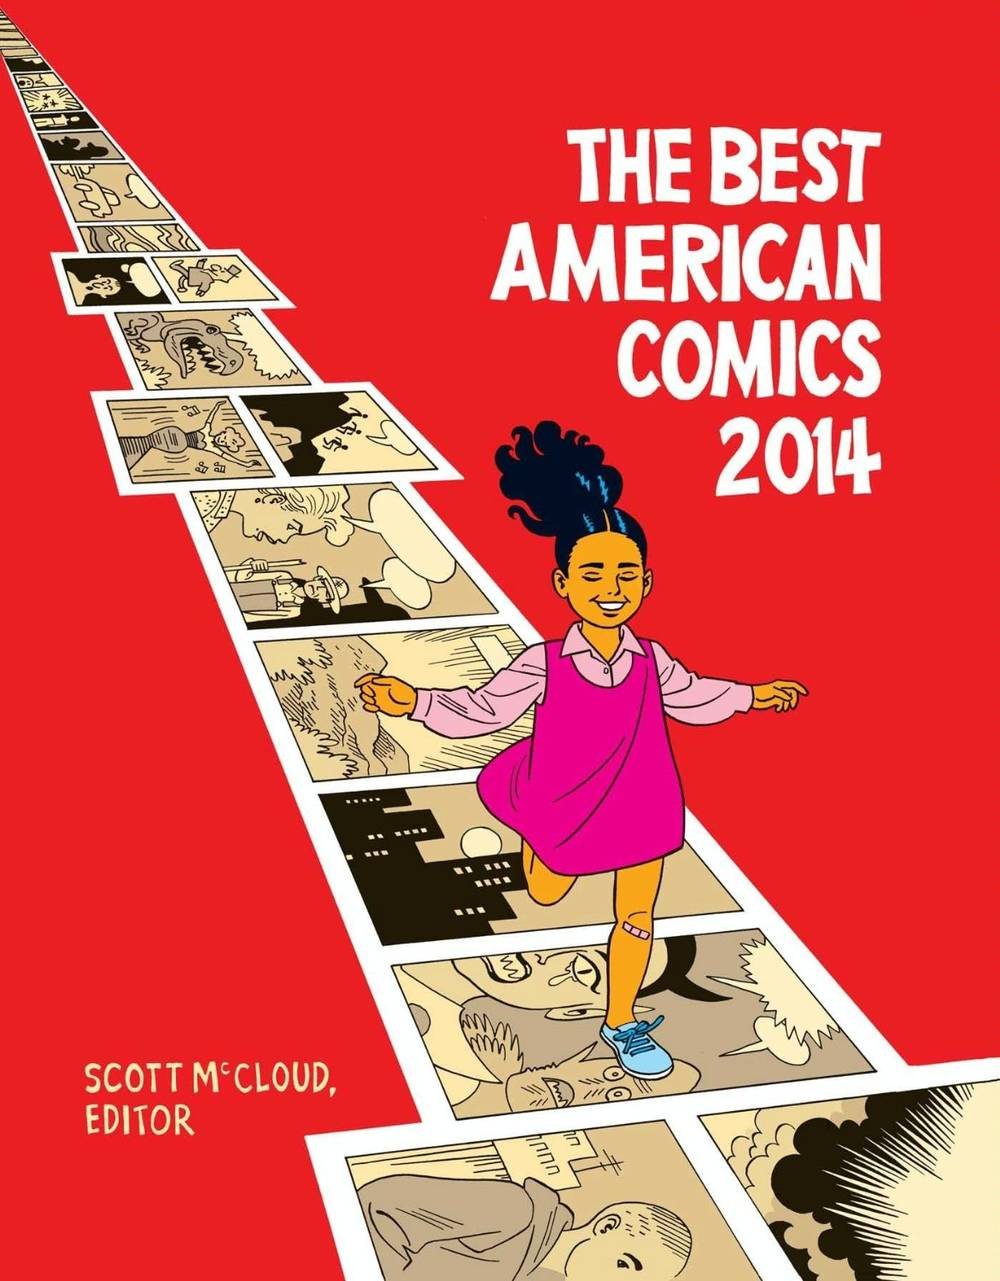 bill kartalopoulos on the evolving legacy of best american comics americancomics jpg